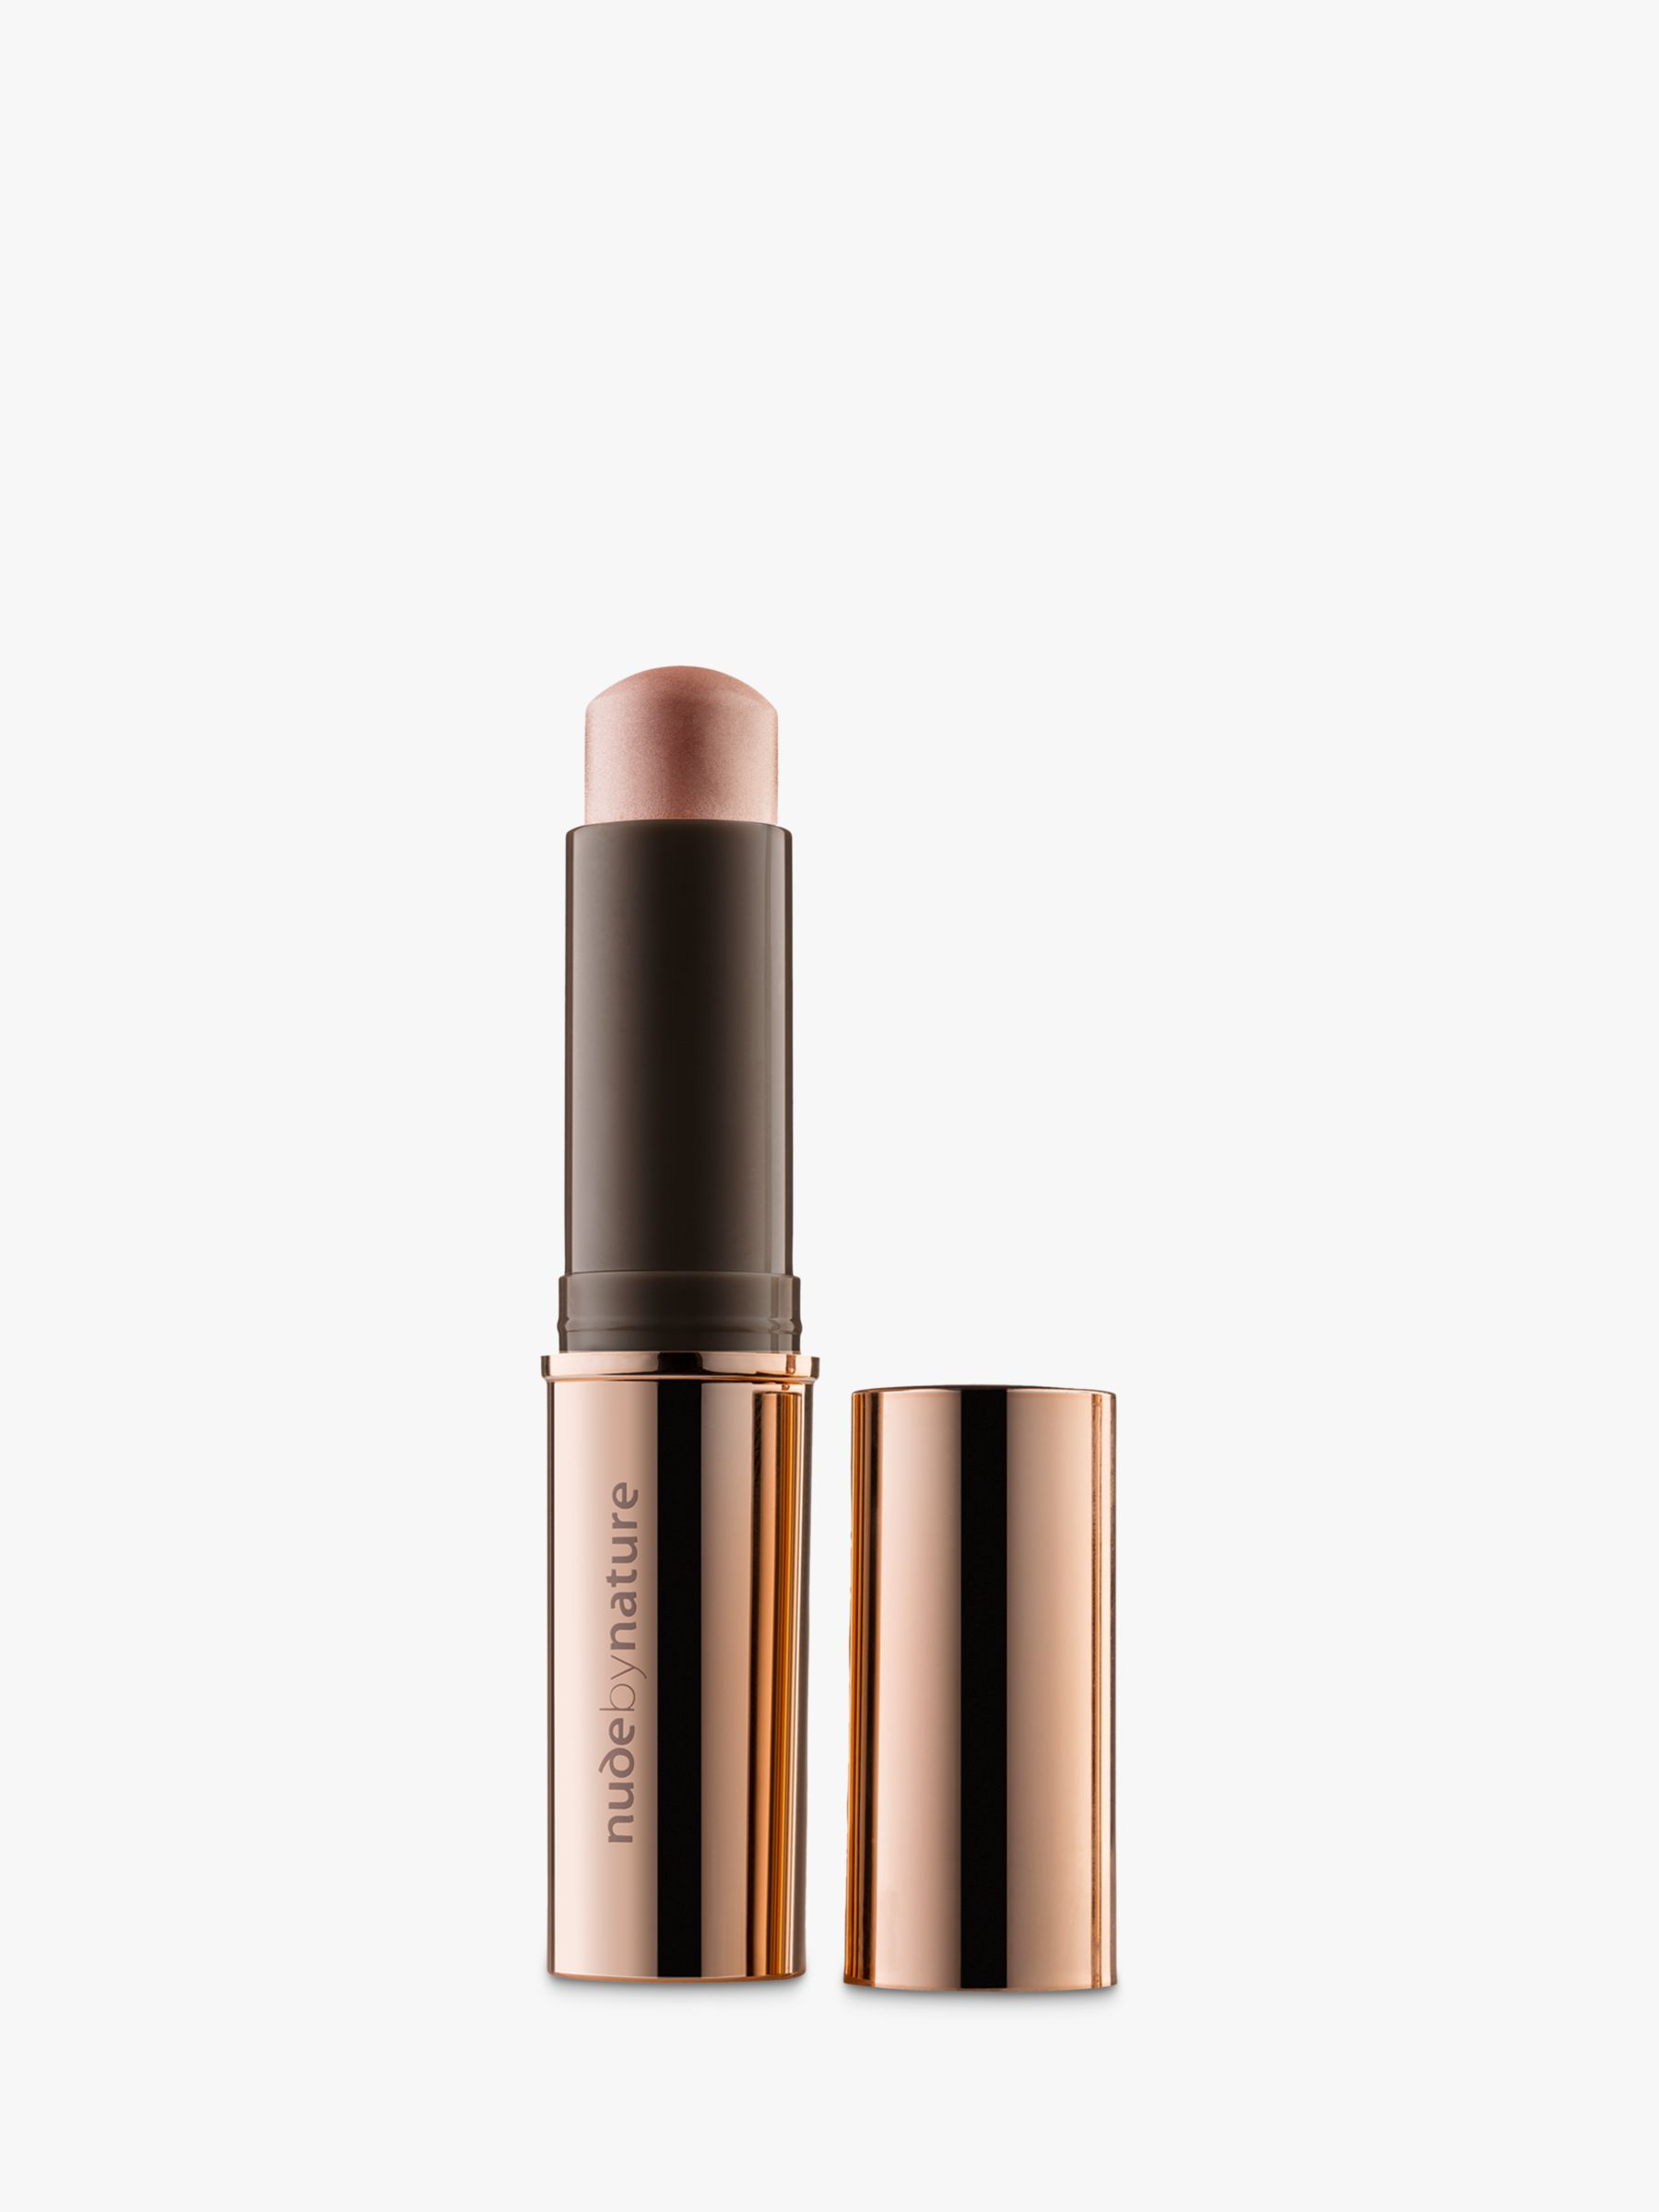 Nude by Nature Nude by Nature Touch of Glow Highlight Stick